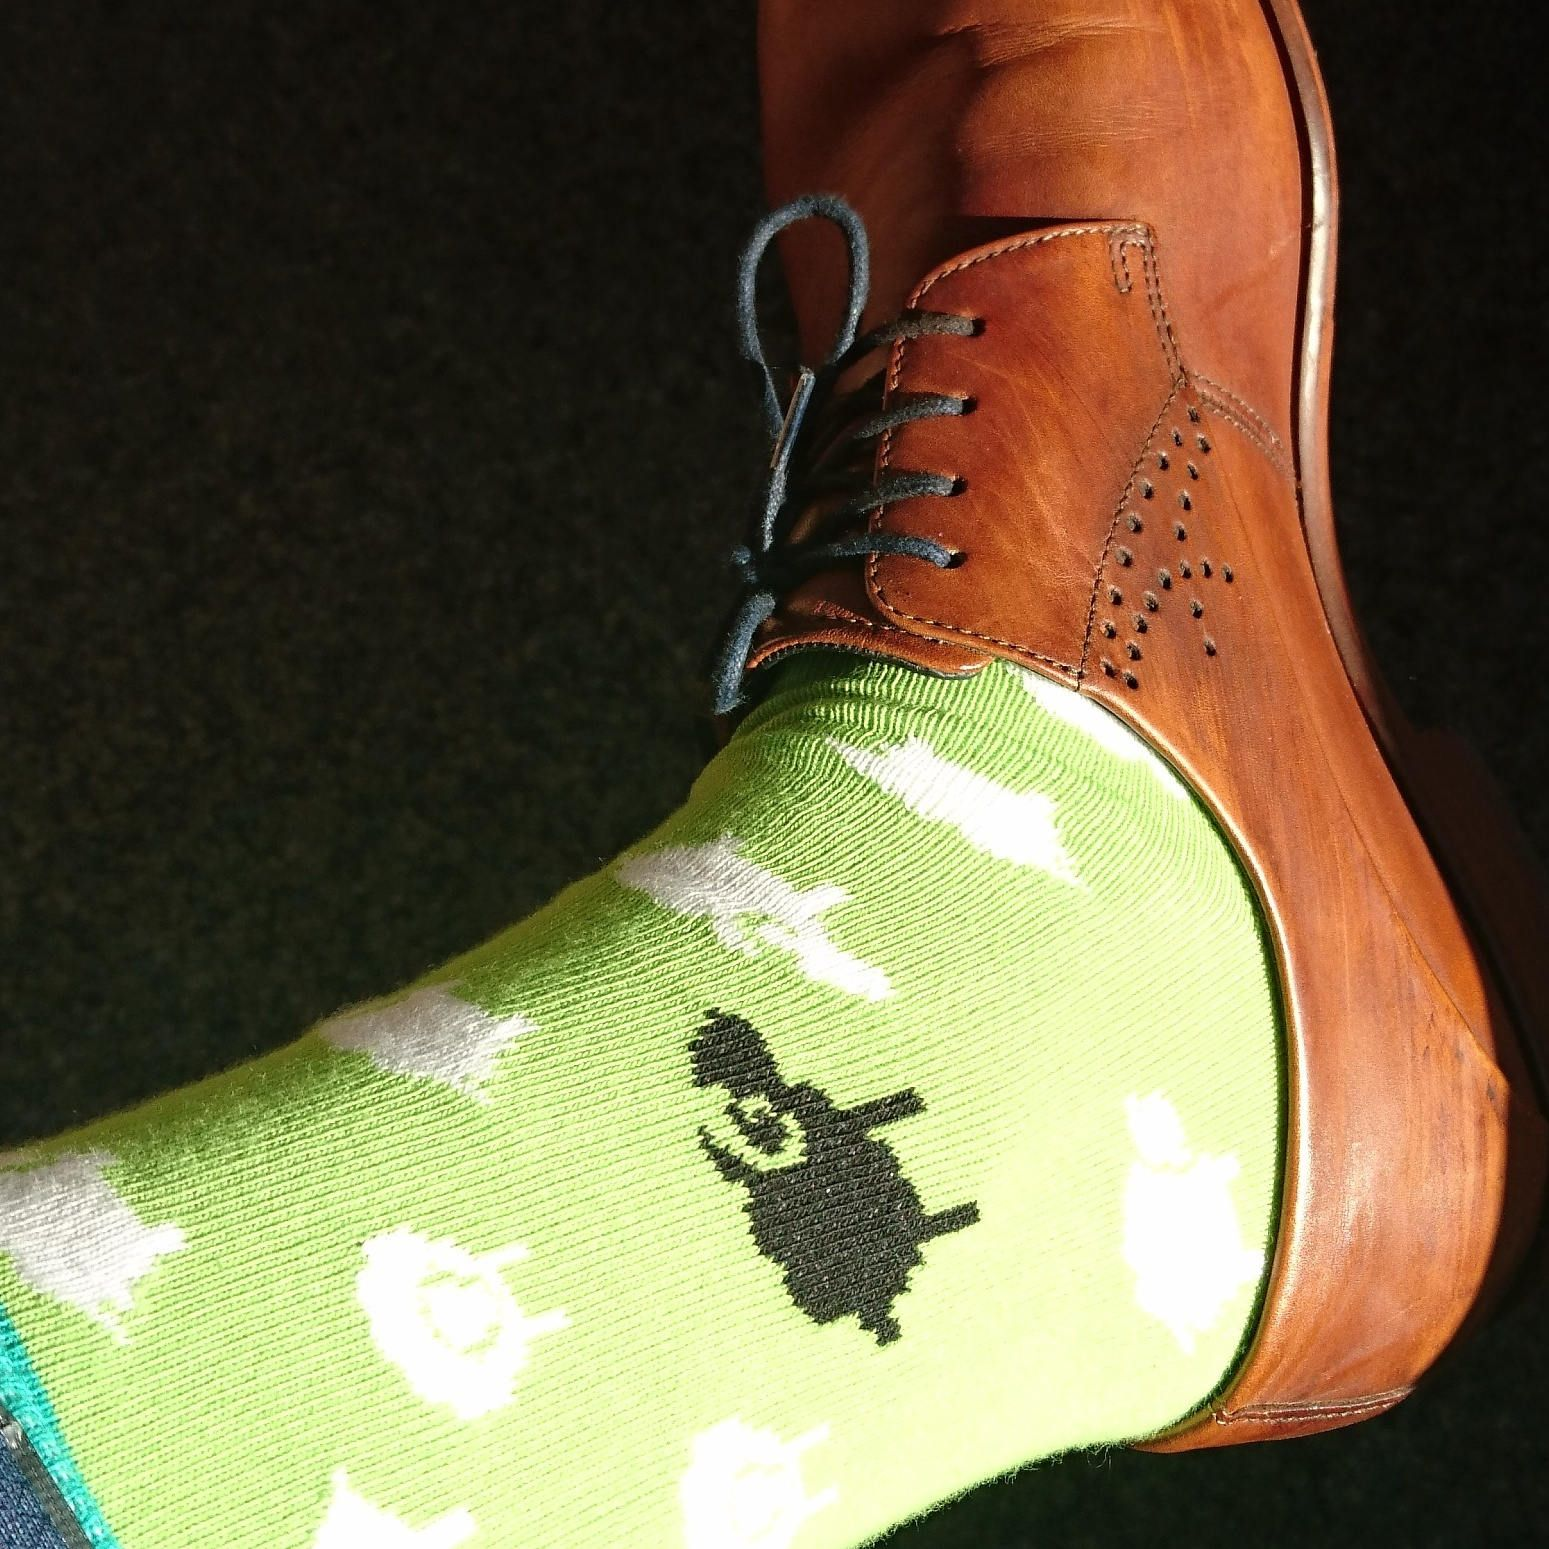 Sheep Socks Cute And Fun For Men Crazy Wedding His Great Funny Hy Gift Novelty Sock